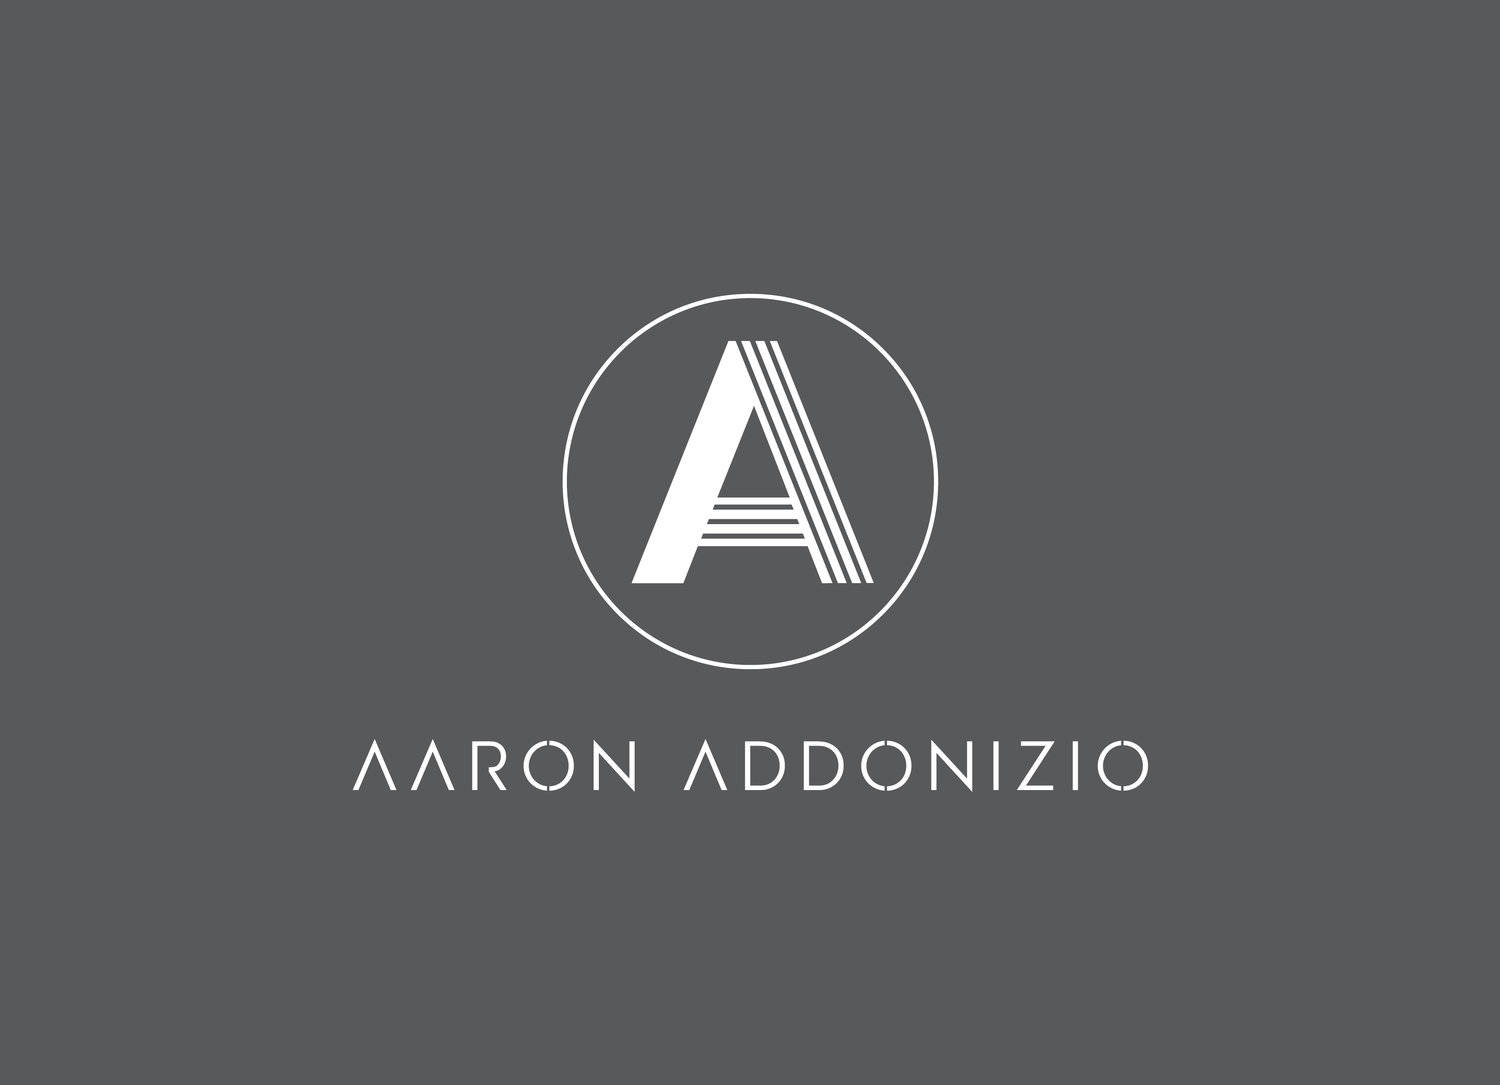 Aaron Addonizio, Business Solutions